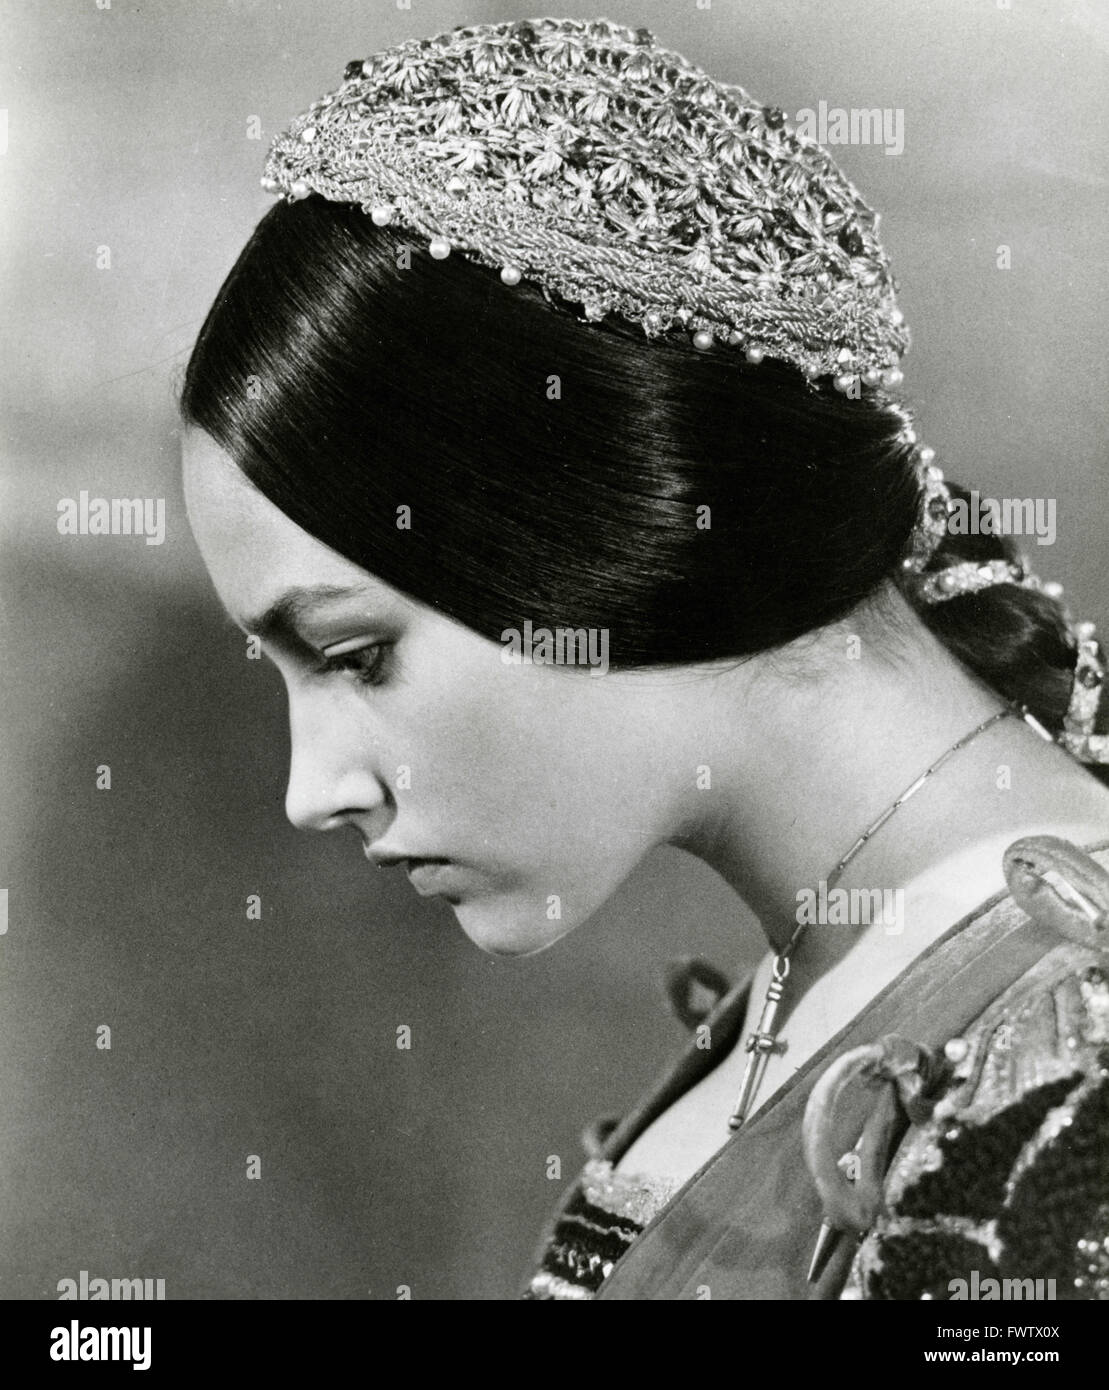 Olivia Hussley in the film Romeo and Juliet, Italy 1968 - Stock Image